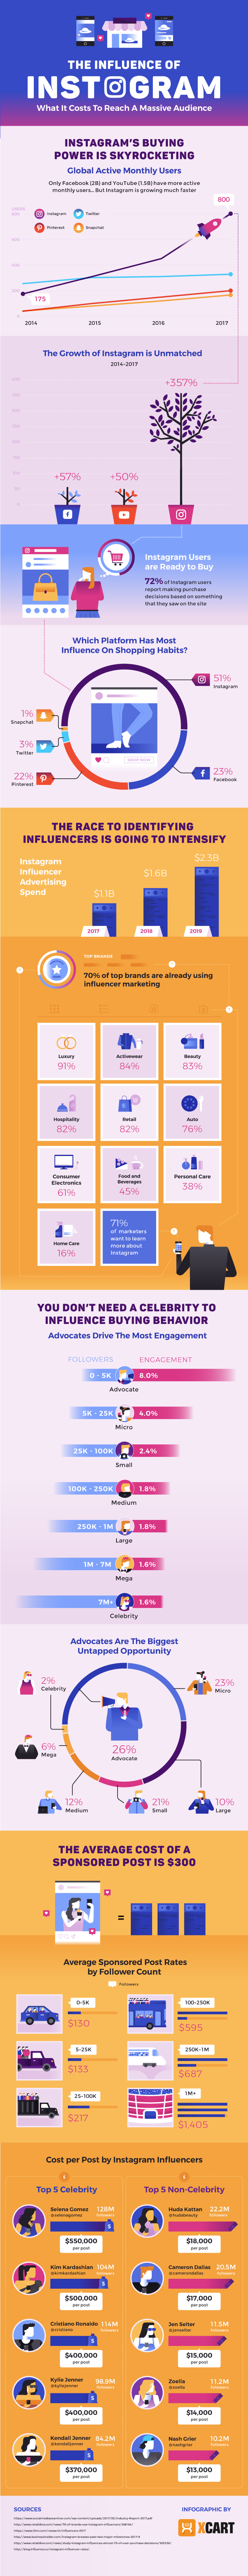 Instagram Marketing For Ecommerce: The Complete Guide #infographic